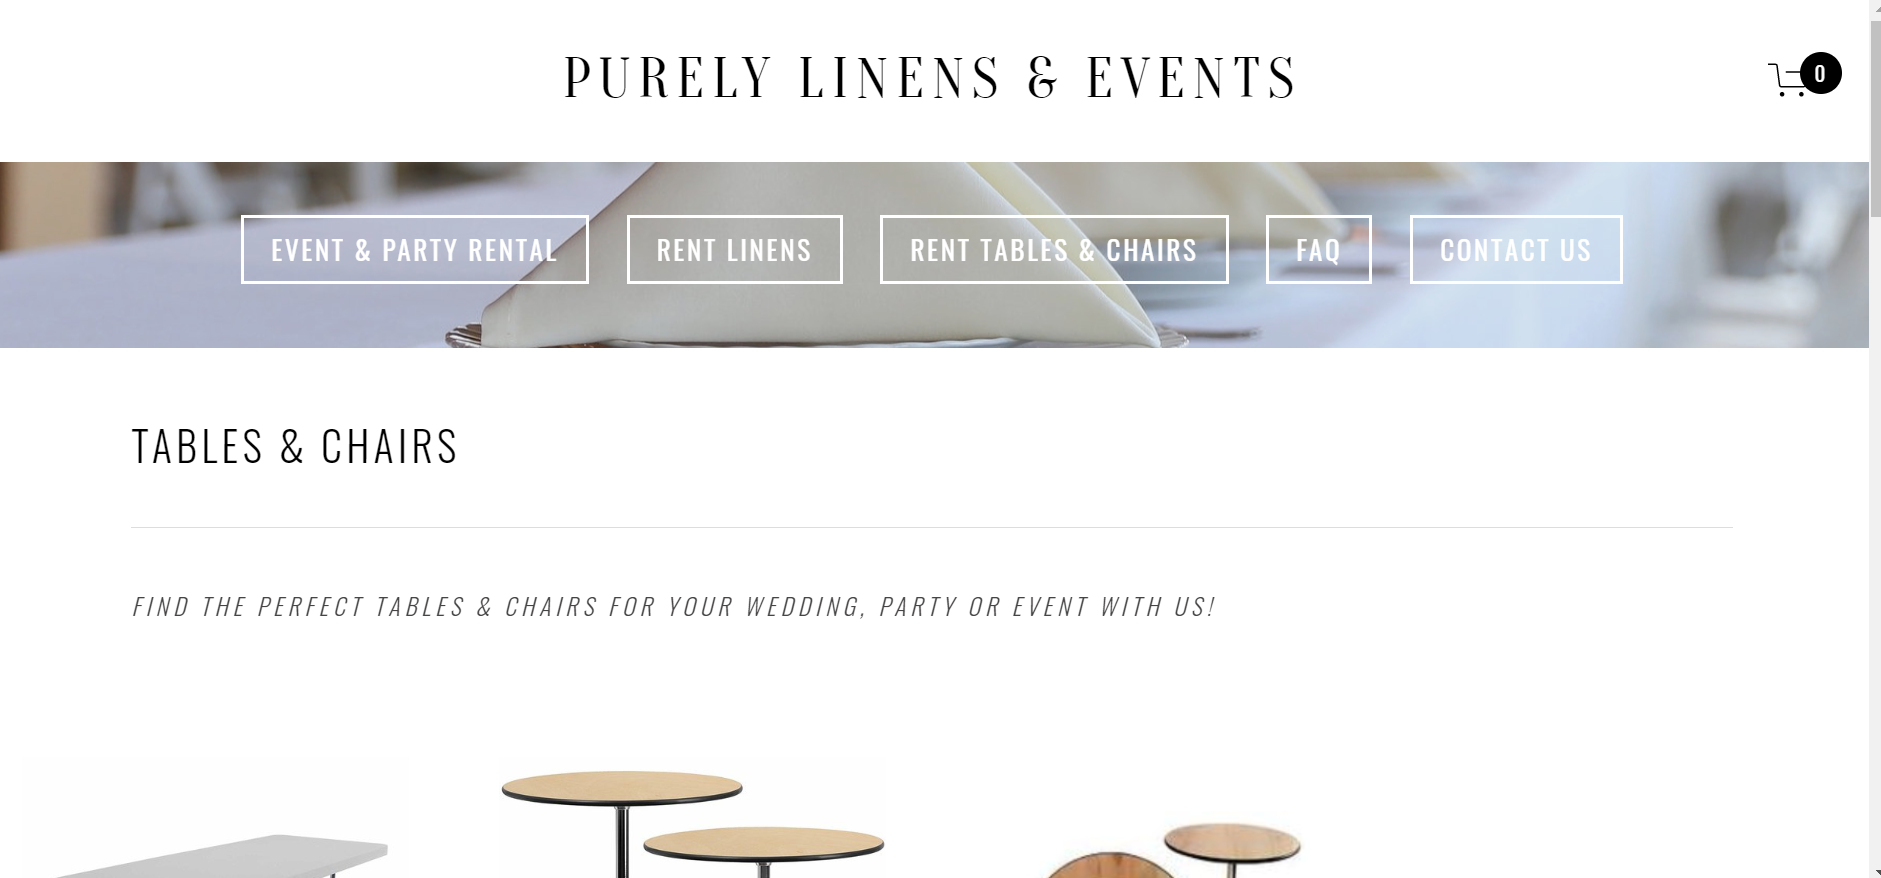 pURELY lINENS & eVENTS - E-COMMERCE